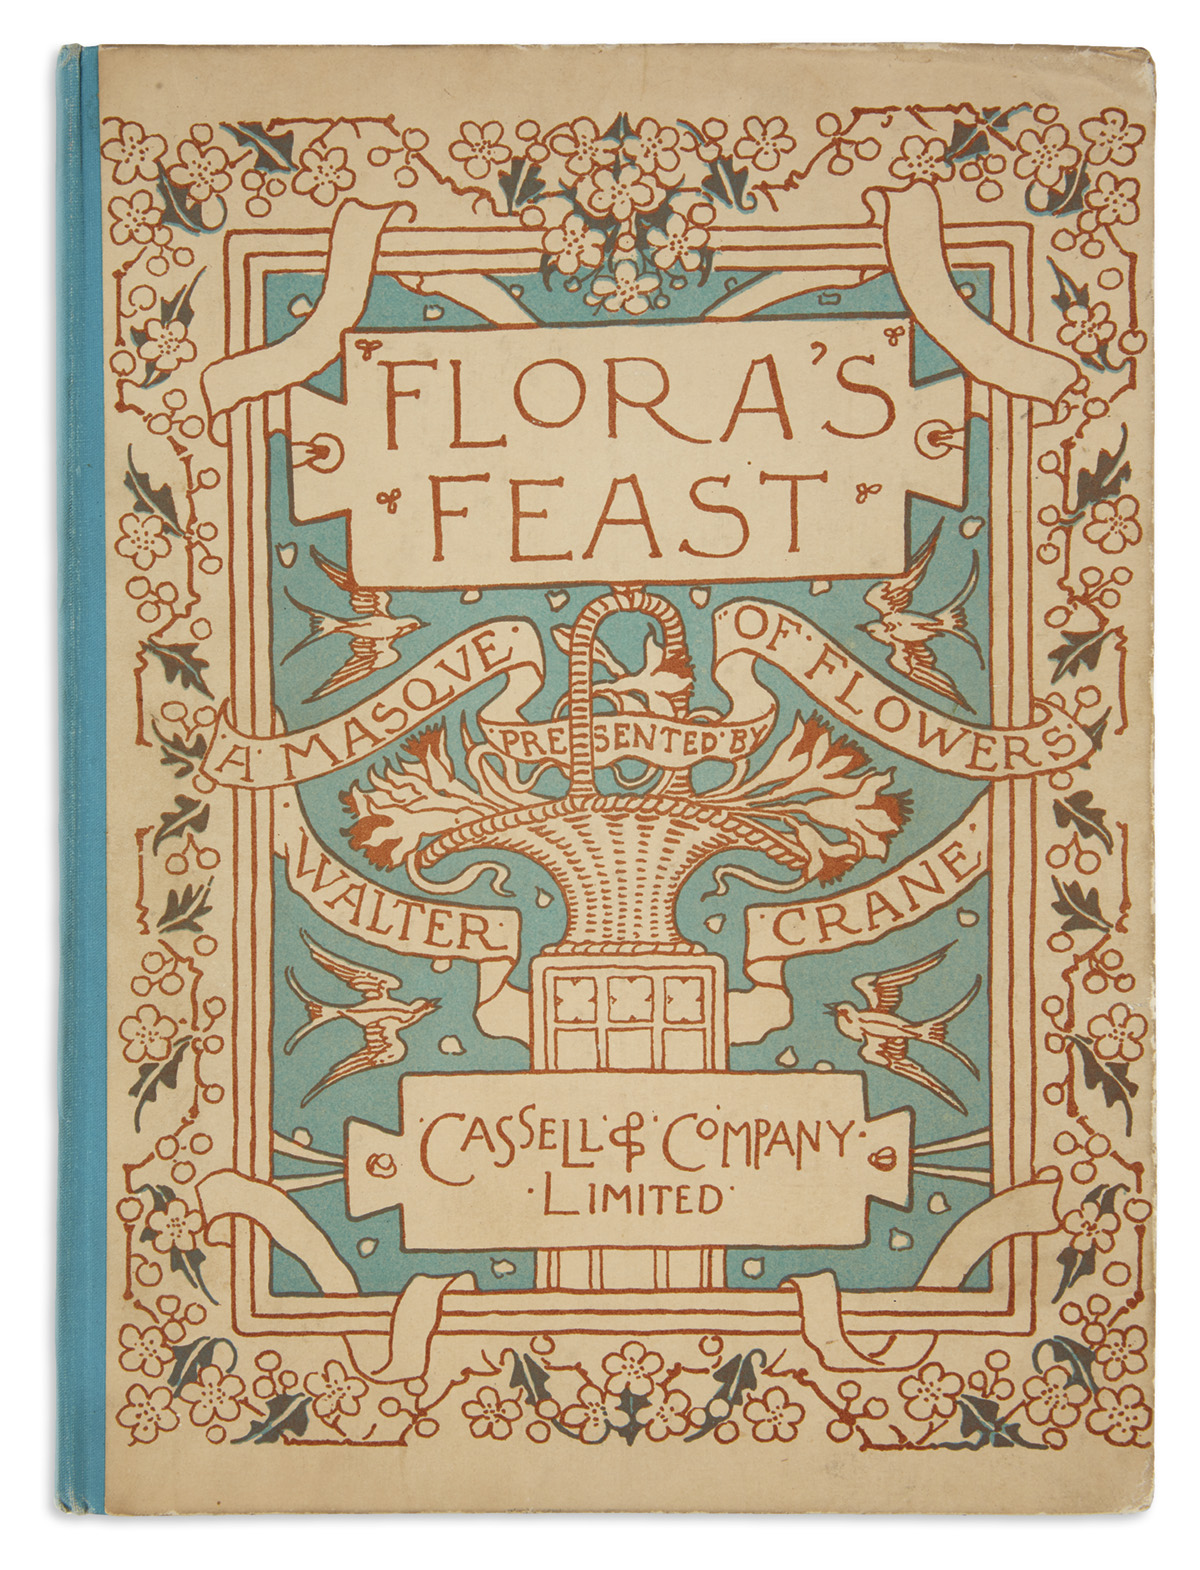 (CHILDRENS-LITERATURE)-CRANE-WALTER-Floras-Feast-A-Masque-of-Flowers